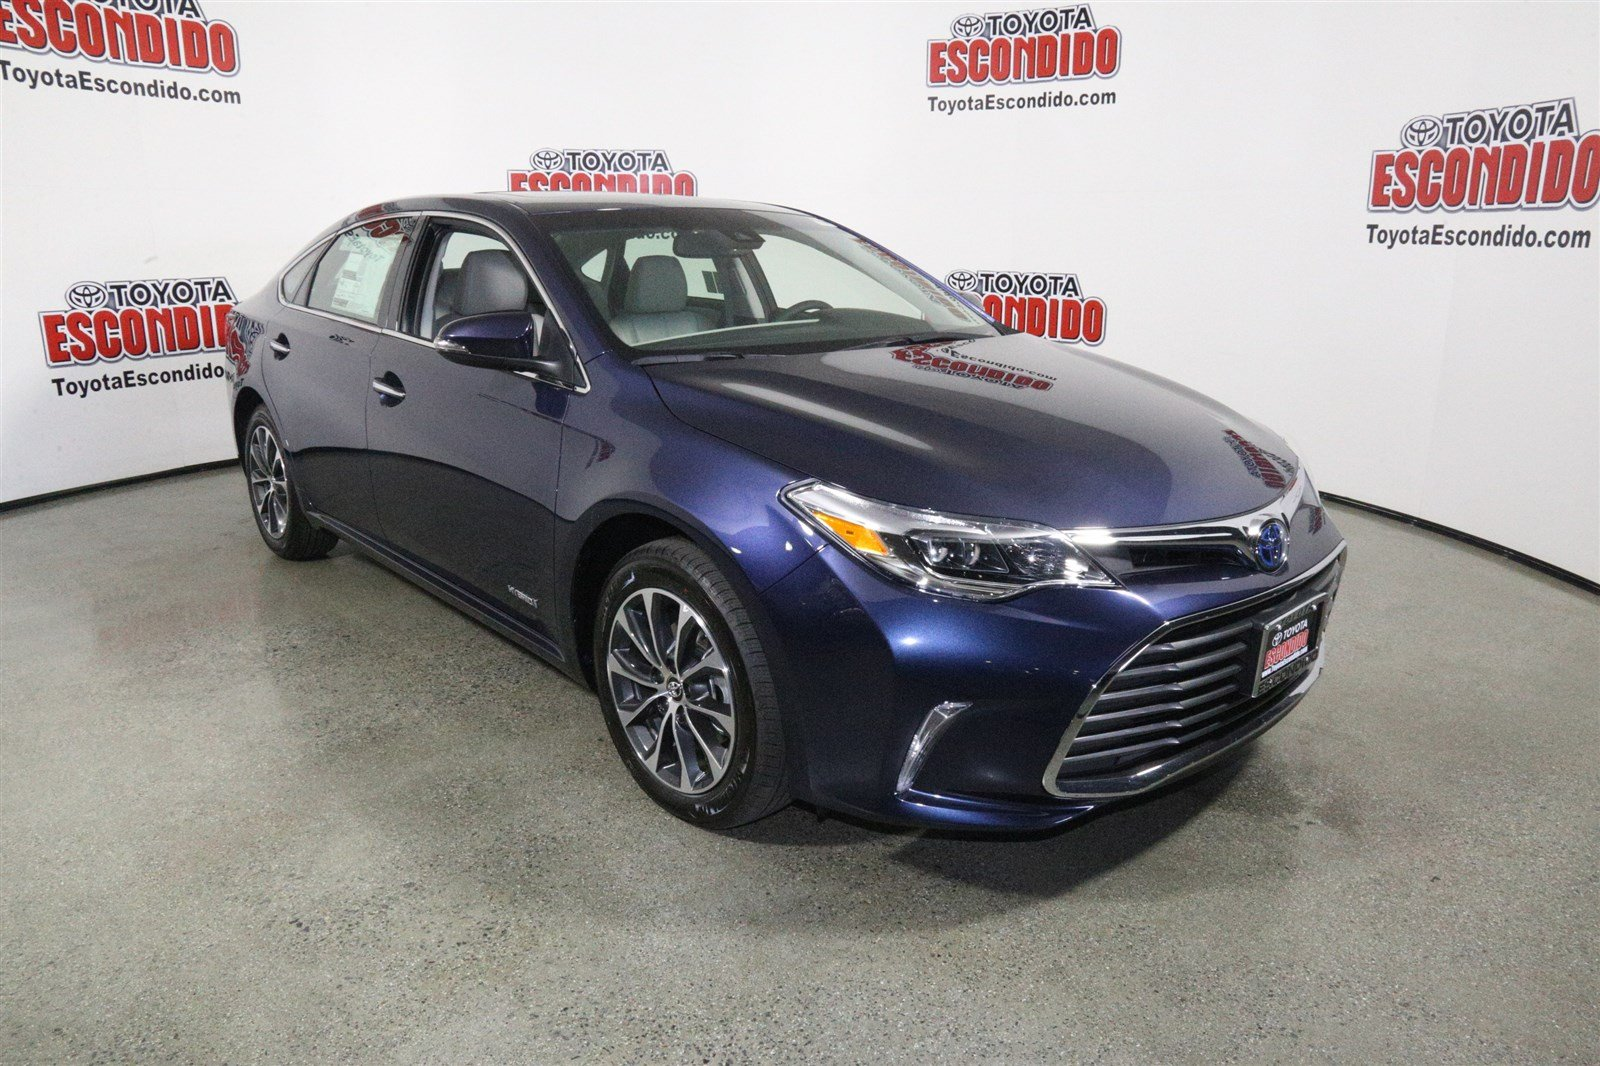 new 2018 toyota avalon hybrid xle premium 4dr car in escondido 1016241 toyota escondido. Black Bedroom Furniture Sets. Home Design Ideas